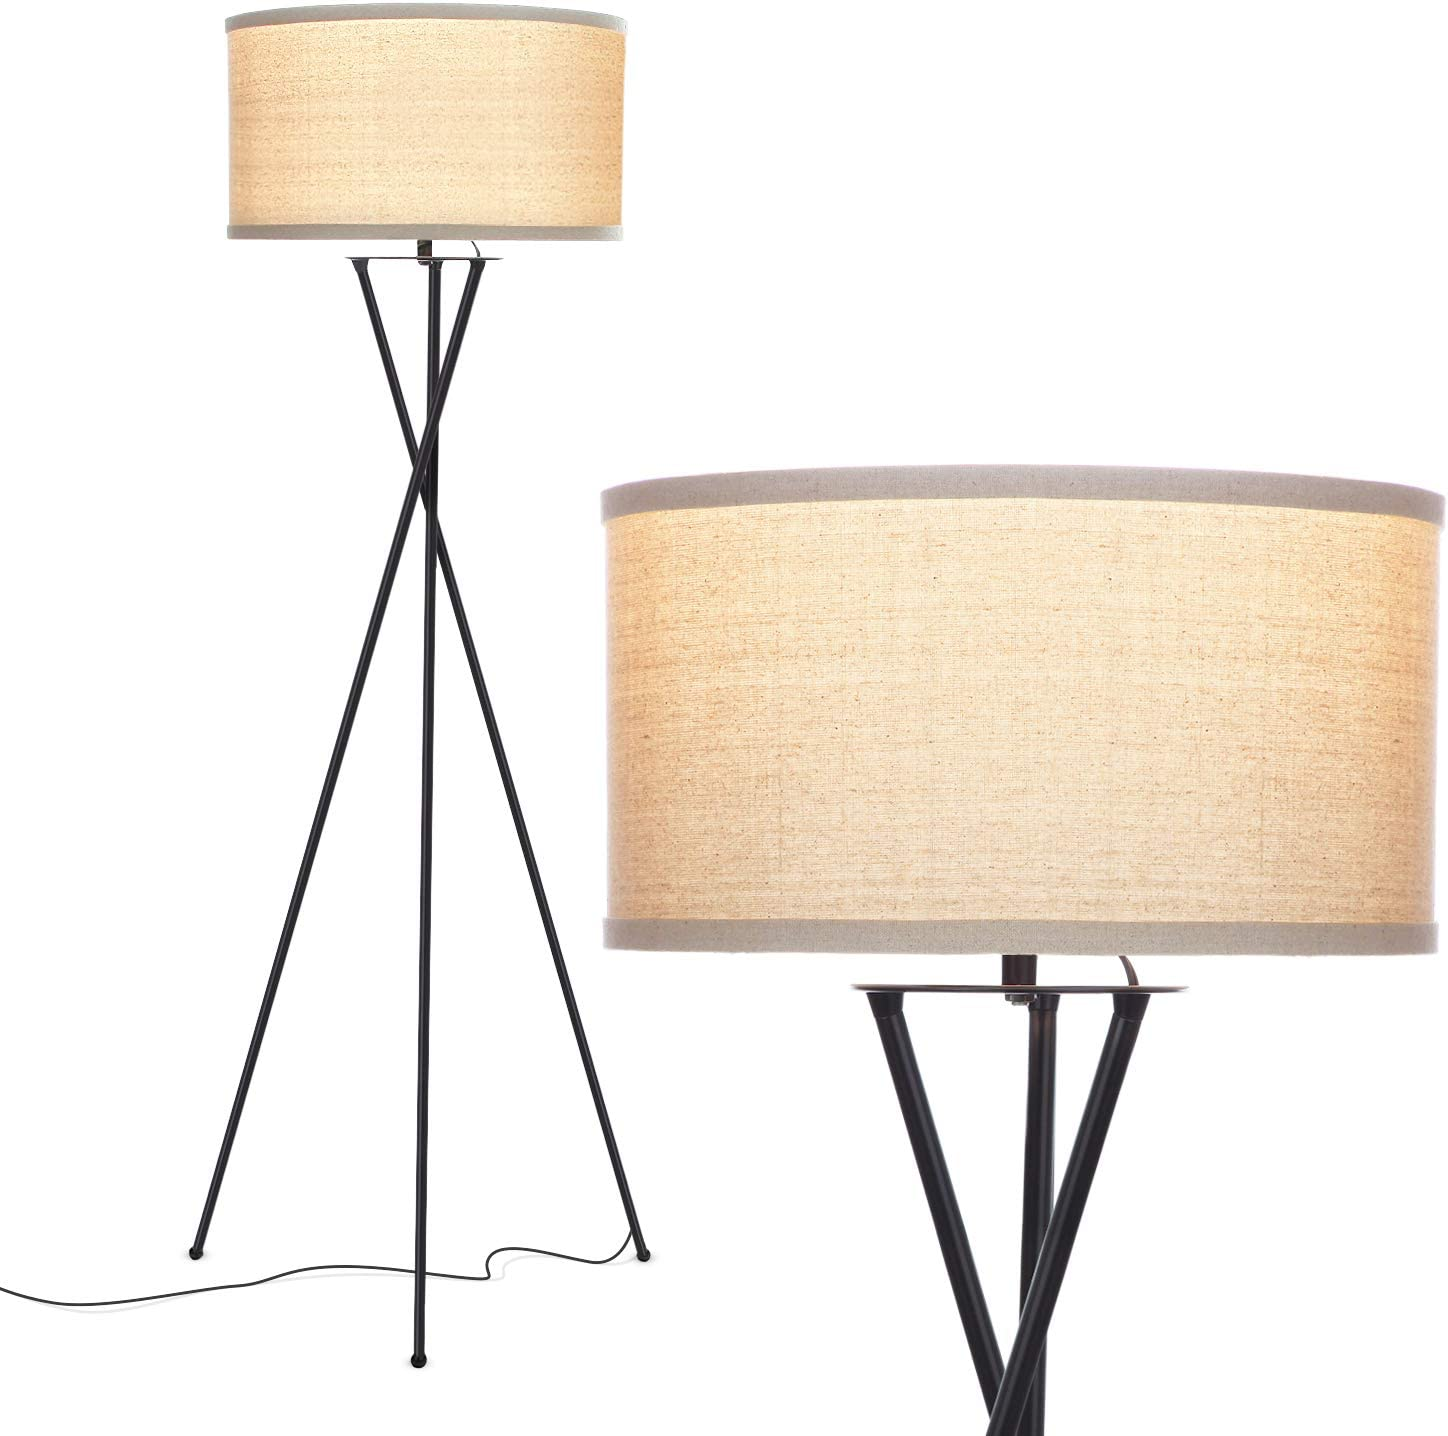 Amazon.com: Brightech Jaxon Tripod LED Floor Lamp – Mid Century Modern,  Living Room Standing Light – Tall, Contemporary Drum Shade Lamp for Bedroom  or Office – Black: Home ImprovementAmazon.com